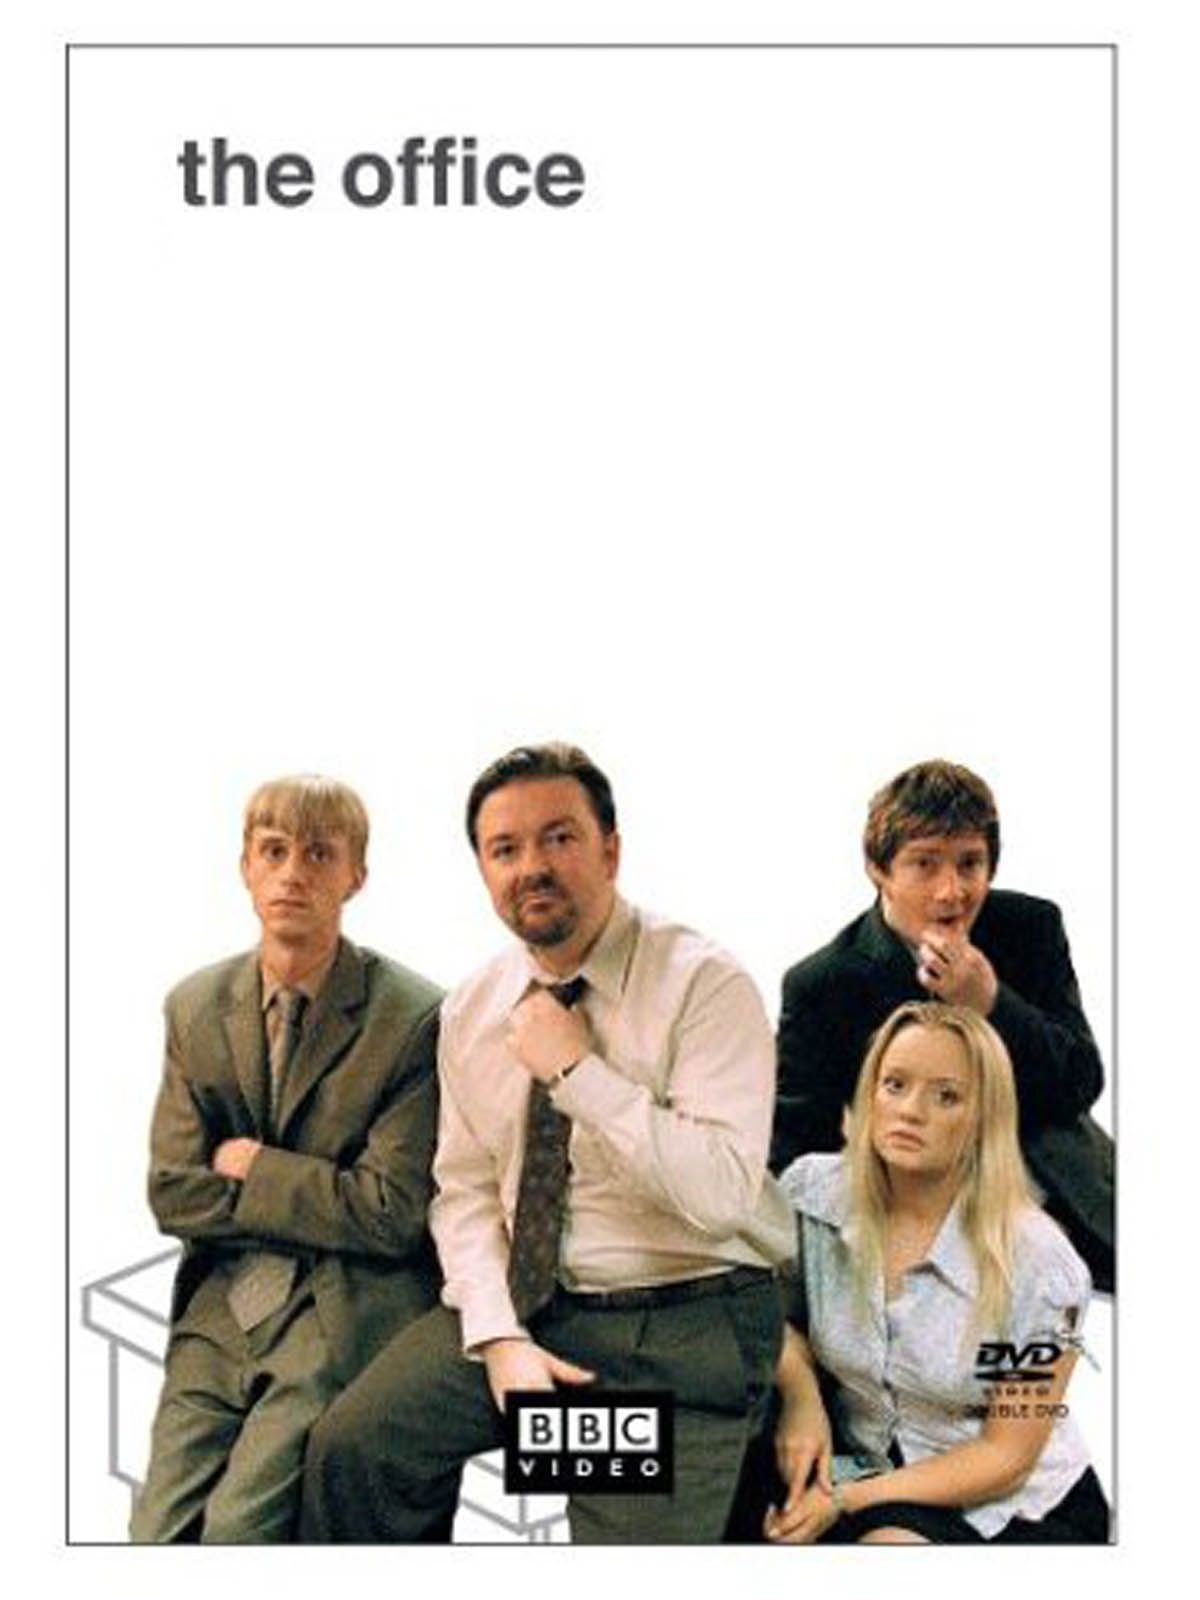 The Office Uk The First And The Best Version Of This Show David